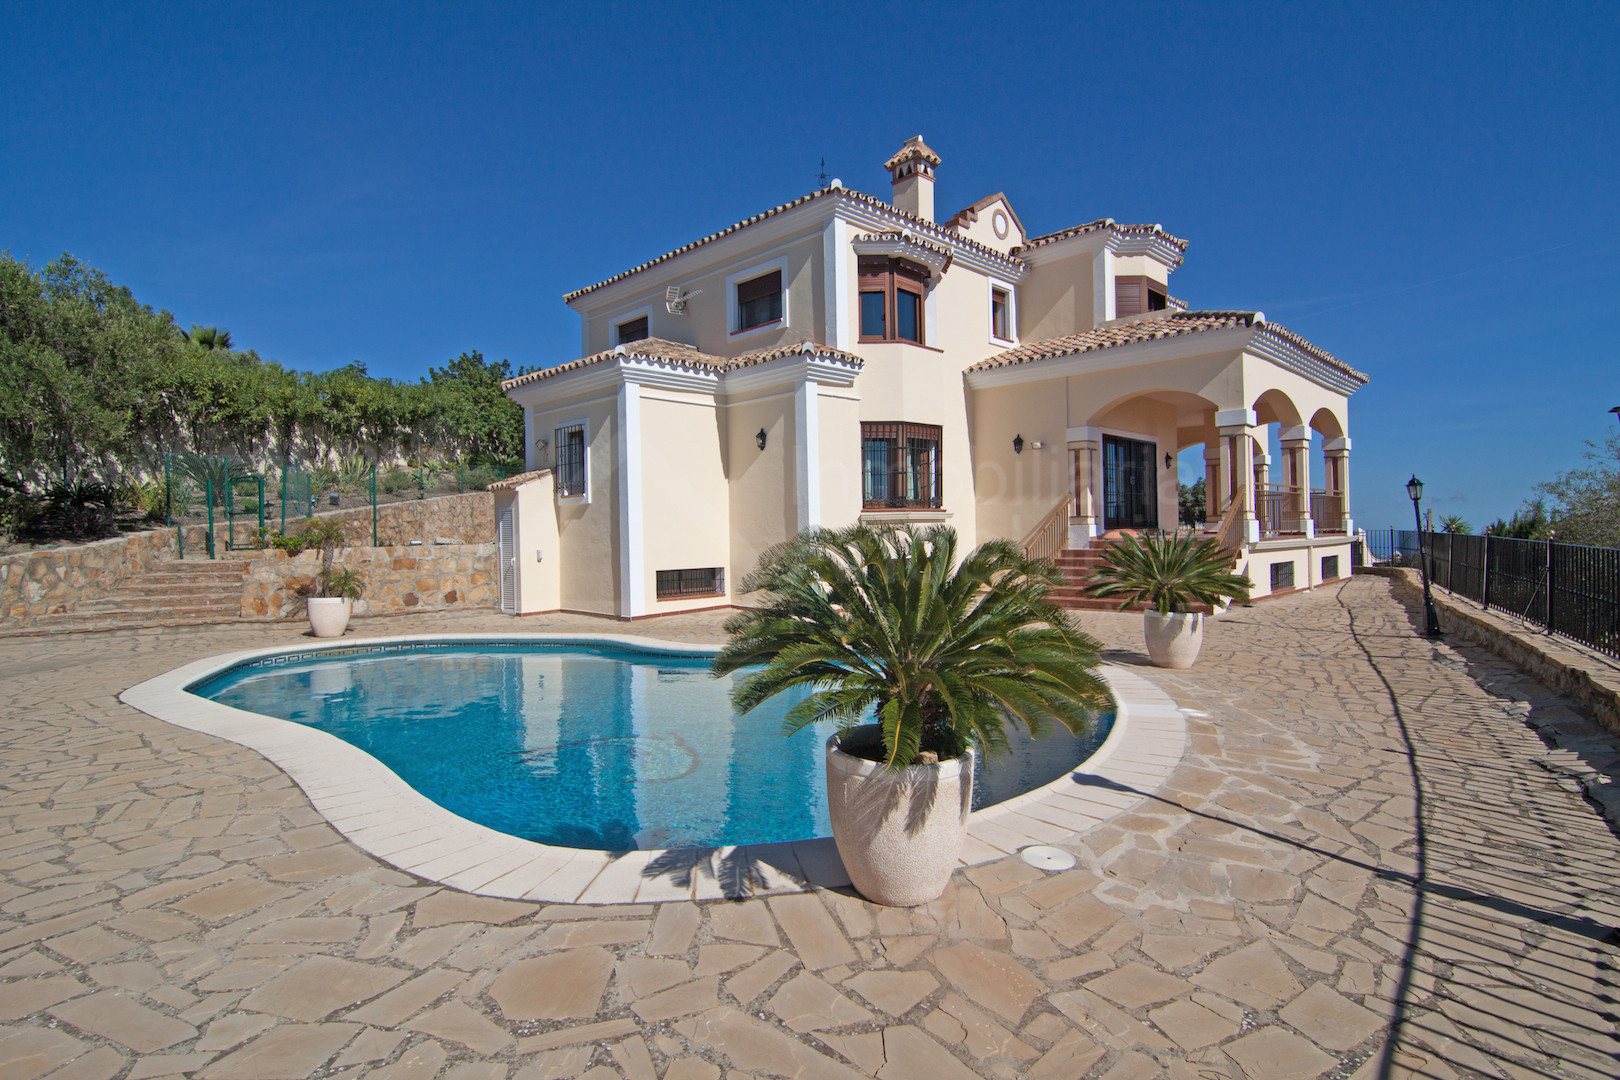 Luxury country villa with impressive elevated views for sale in Casares